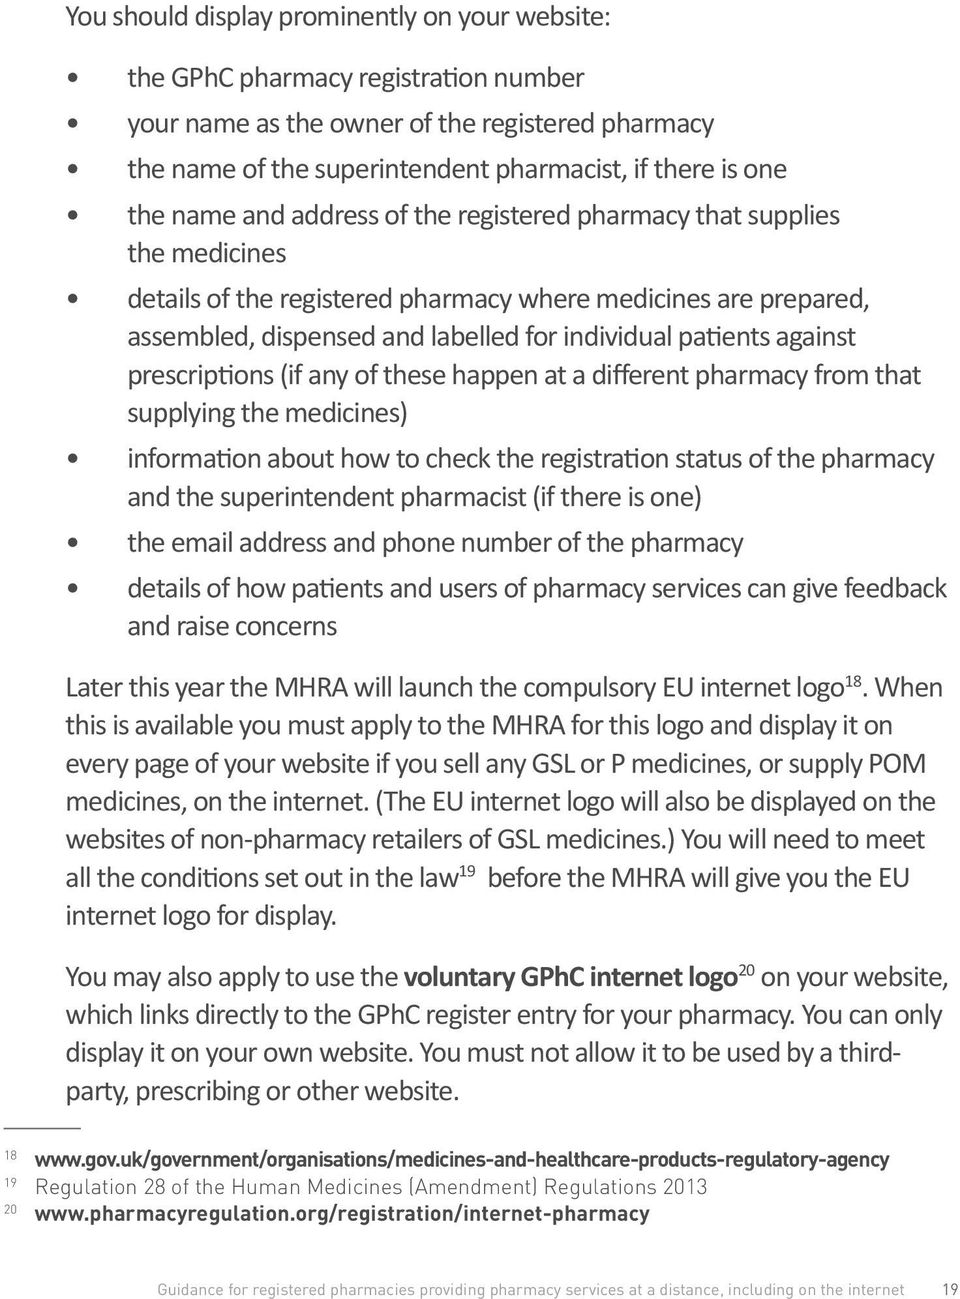 against prescriptions (if any of these happen at a different pharmacy from that supplying the medicines) information about how to check the registration status of the pharmacy and the superintendent